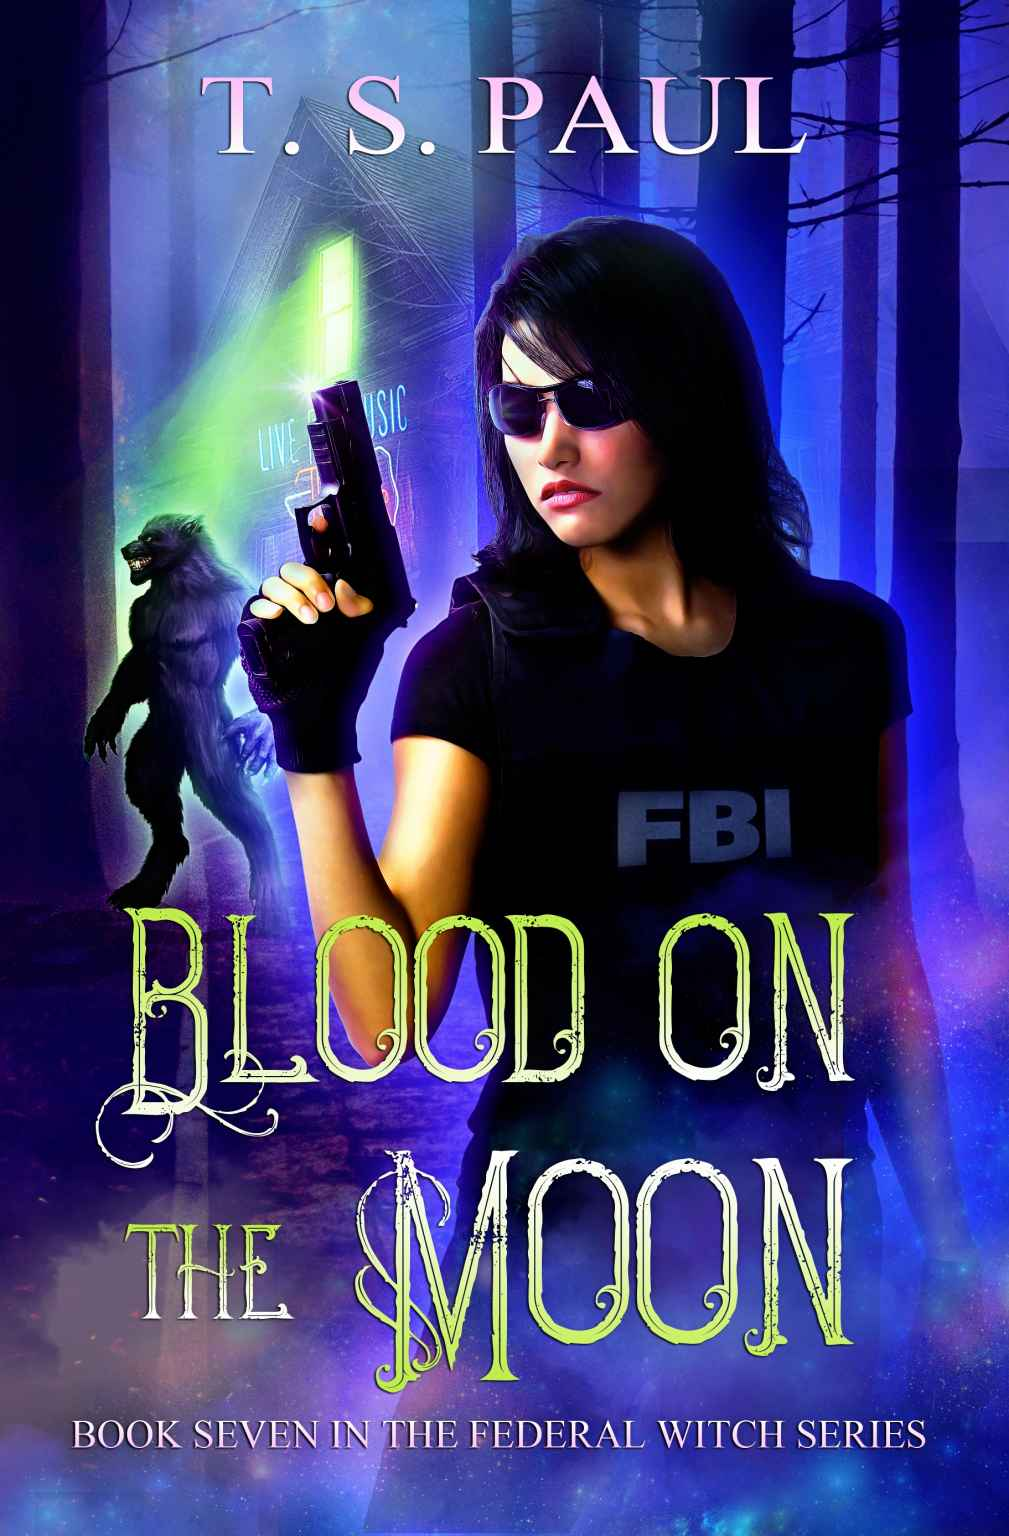 Blood on the Moon: Another read worthy Federal Witch book.